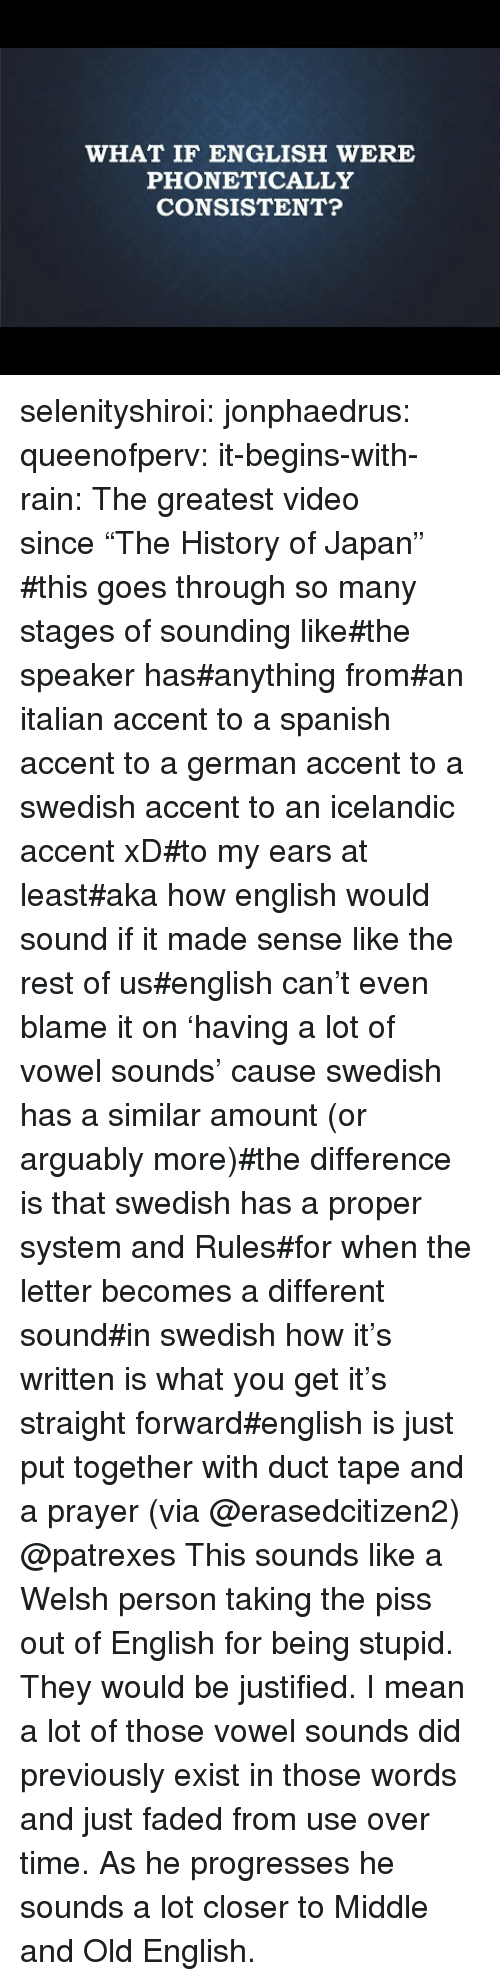 """Spanish, Tumblr, and Faded: WHAT IF ENGLISH WERE  PHONETICALLY  CONSISTENT? selenityshiroi:  jonphaedrus:  queenofperv:  it-begins-with-rain: The greatest video since""""The History of Japan""""   #this goes through so many stages of sounding like#the speaker has#anything from#an italian accent to a spanish accent to a german accent to a swedish accent to an icelandic accent xD#to my ears at least#aka how english would sound if it made sense like the rest of us#english can't even blame it on 'having a lot of vowel sounds' cause swedish has a similar amount (or arguably more)#the difference is that swedish has a proper system and Rules#for when the letter becomes a different sound#in swedish how it's written is what you get it's straight forward#english is just put together with duct tape and a prayer(via @erasedcitizen2)  @patrexes  This sounds like a Welsh person taking the piss out of English for being stupid. They would be justified. I mean a lot of those vowel sounds did previously exist in those words and just faded from use over time. As he progresses he sounds a lot closer to Middle and Old English."""